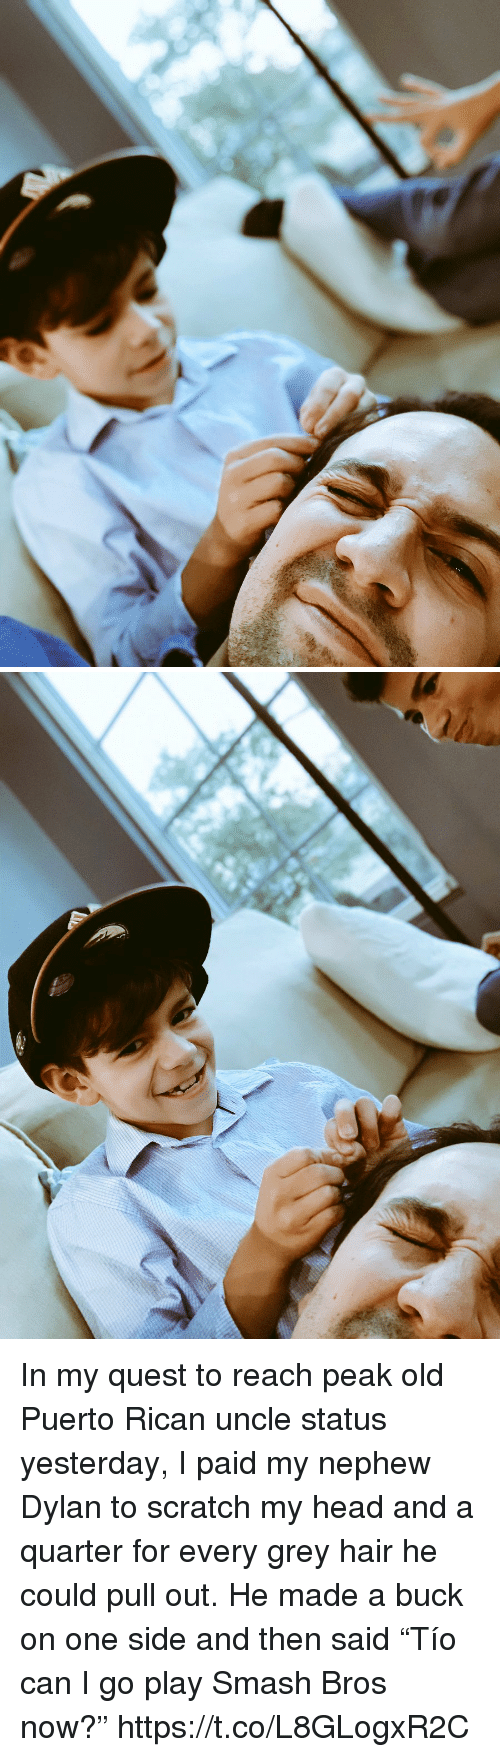 "Head, Memes, and Smashing: In my quest to reach peak old Puerto Rican uncle status yesterday, I paid my nephew Dylan to scratch my head and a quarter for every grey hair he could pull out. He made a buck on one side and then said ""Tío can I go play Smash Bros now?"" https://t.co/L8GLogxR2C"